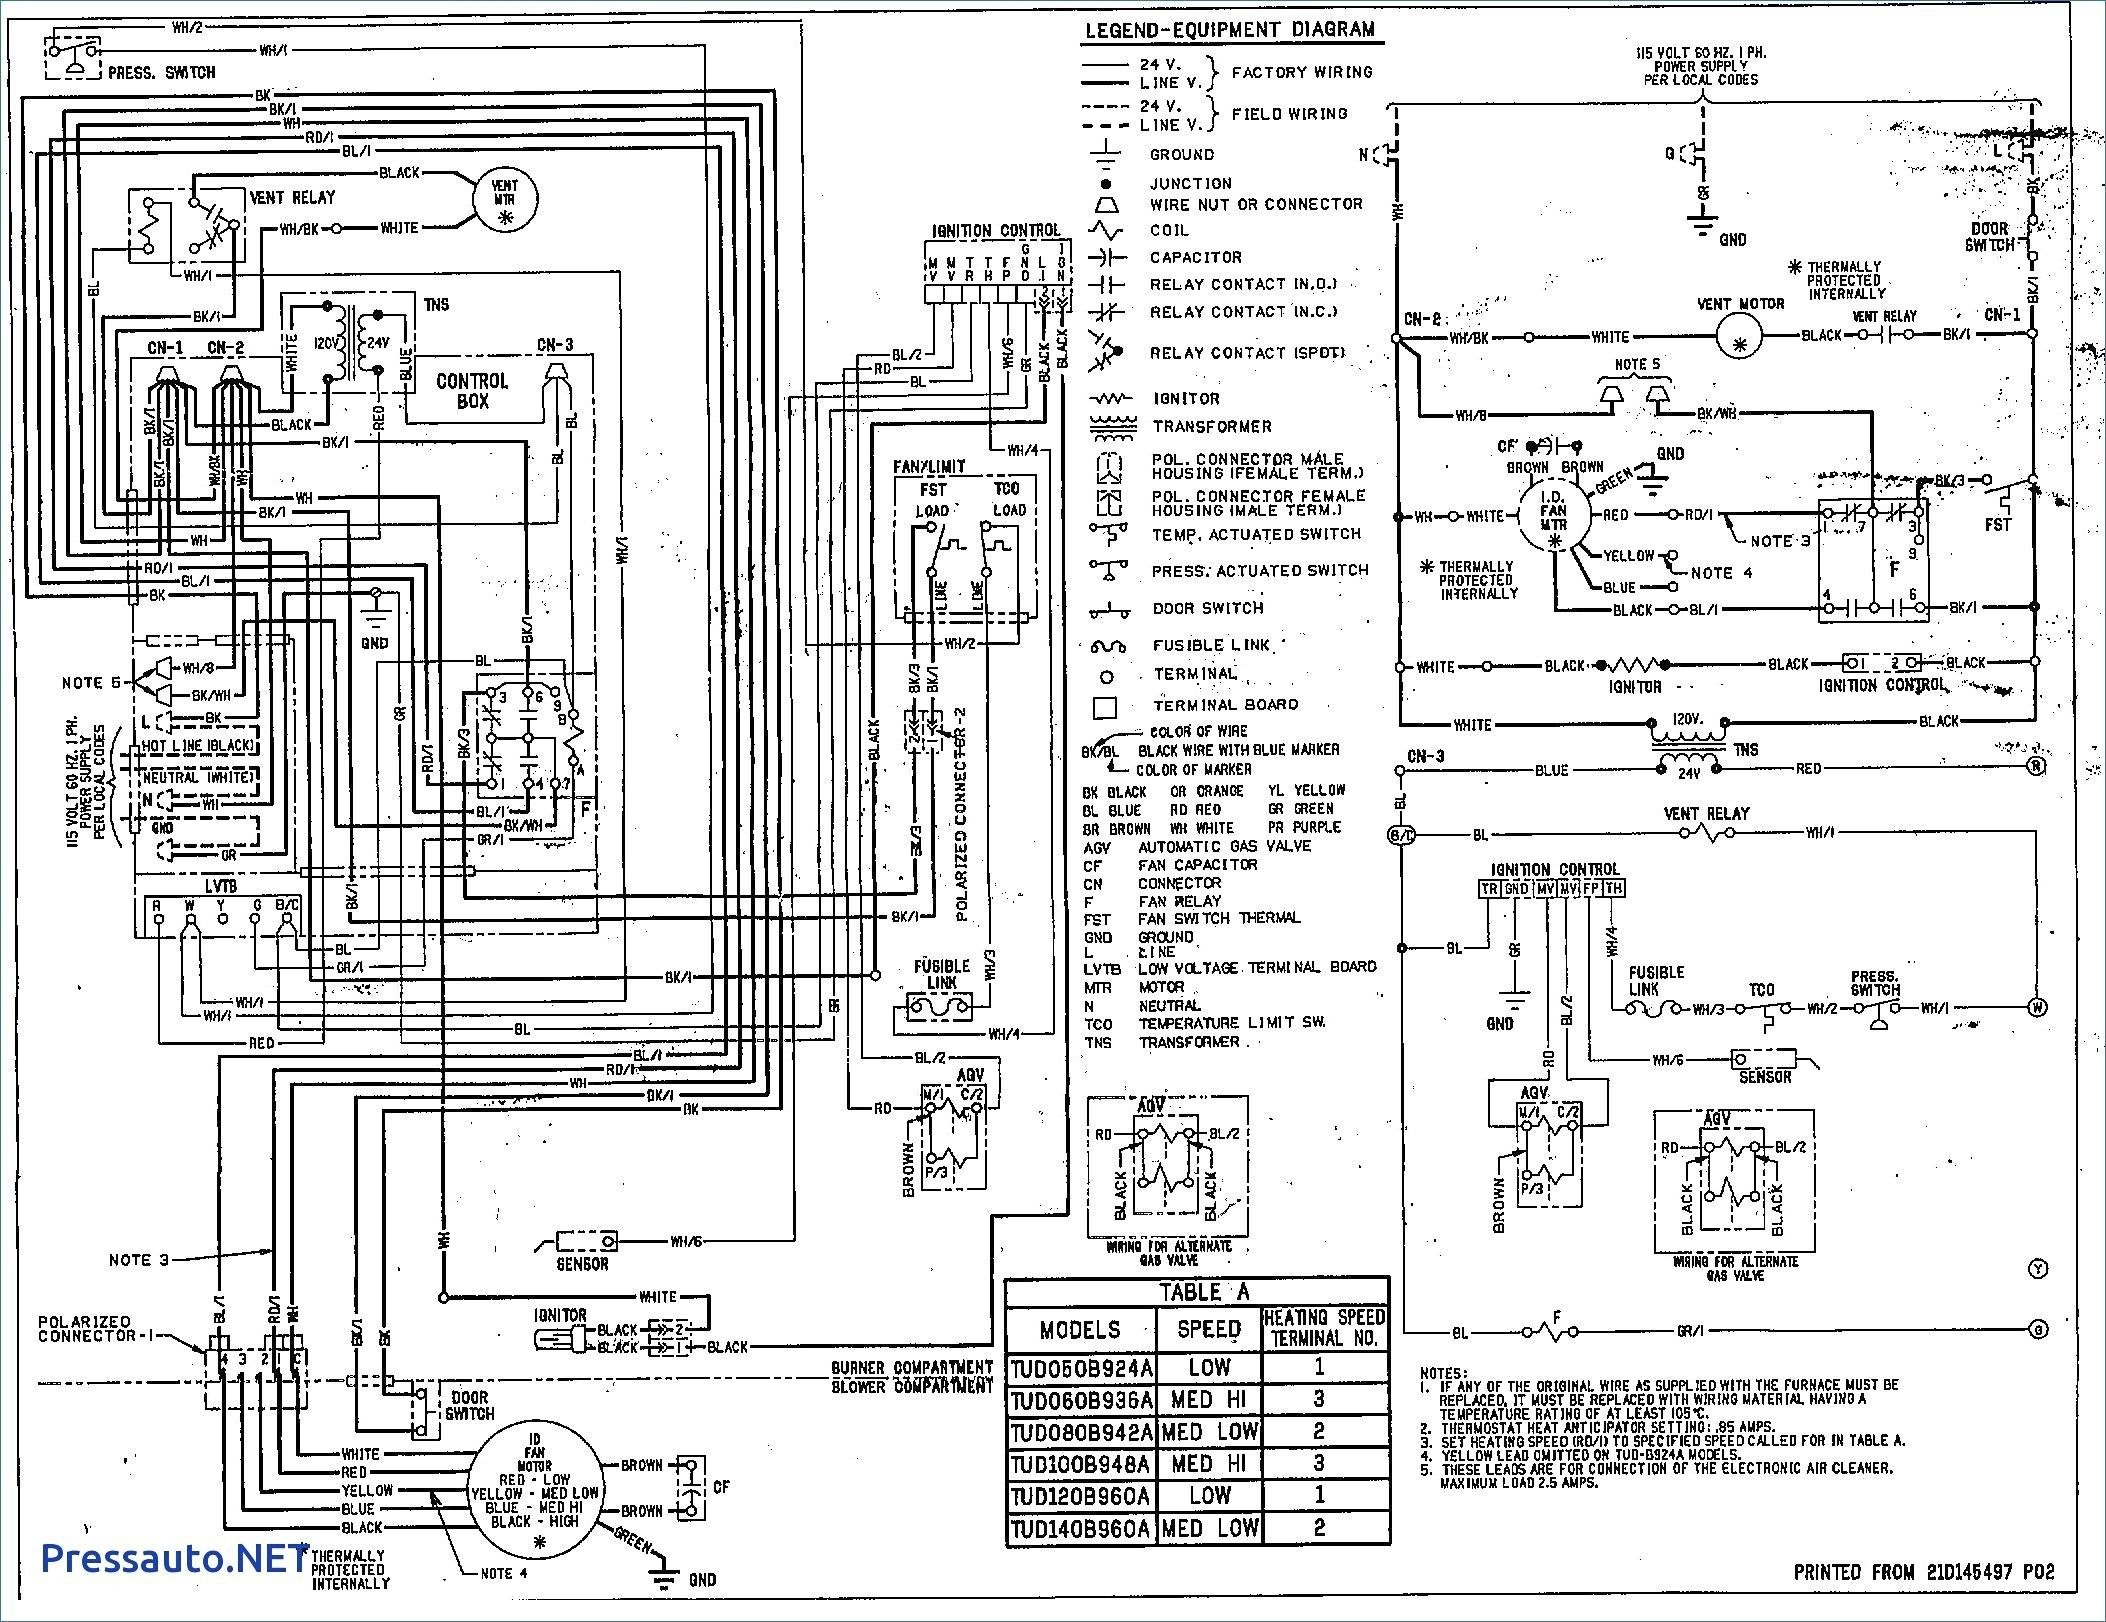 New Wiring Diagram for Air Conditioning Unit #